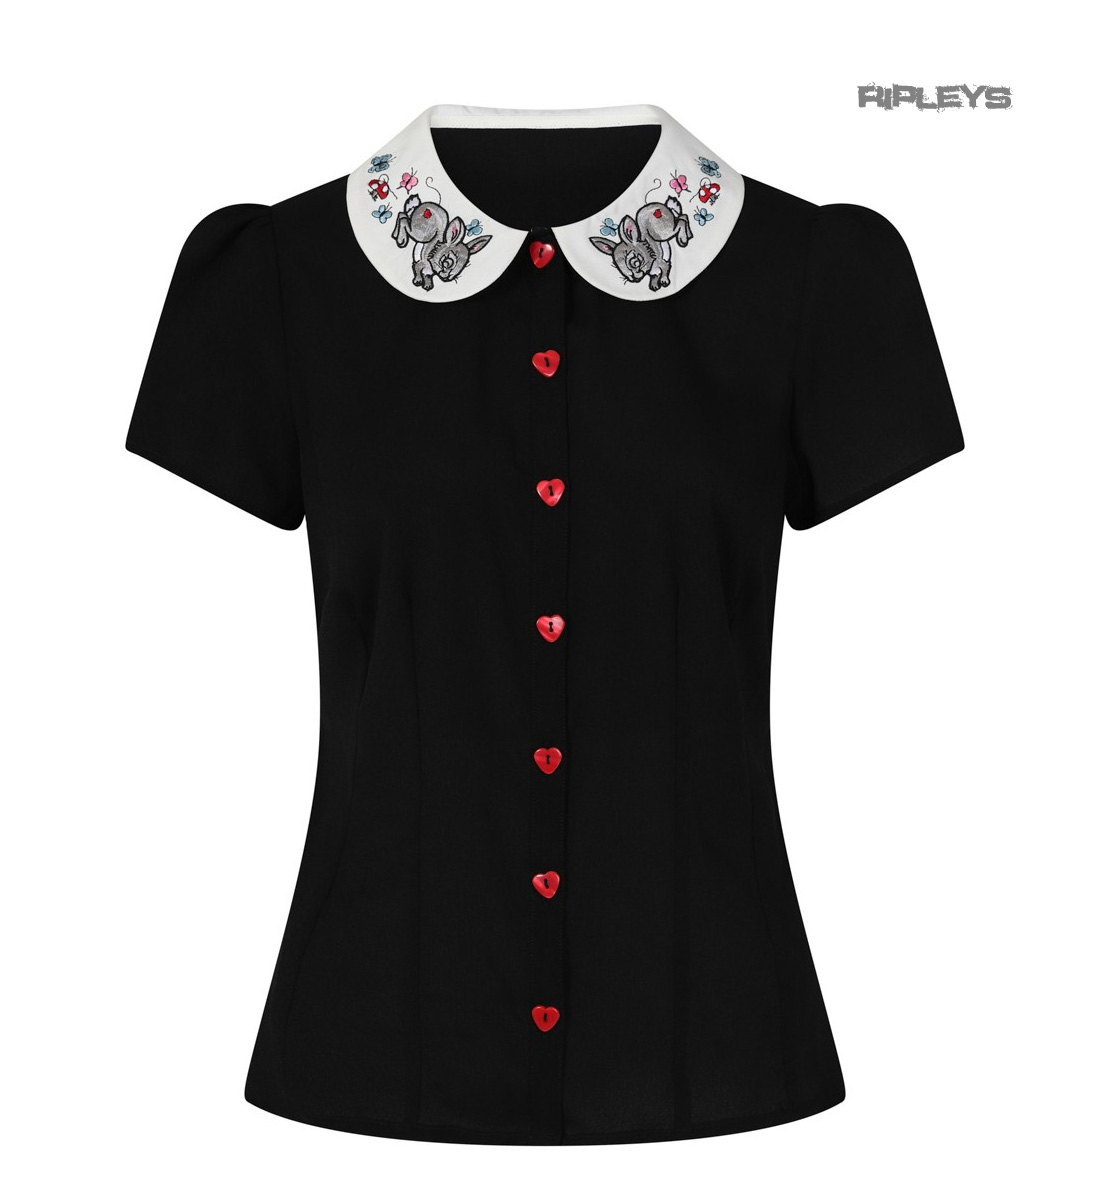 Hell-Bunny-Shirt-Top-Black-Blouse-THUMPER-Easter-Rabbit-Flowers-All-Sizes thumbnail 20